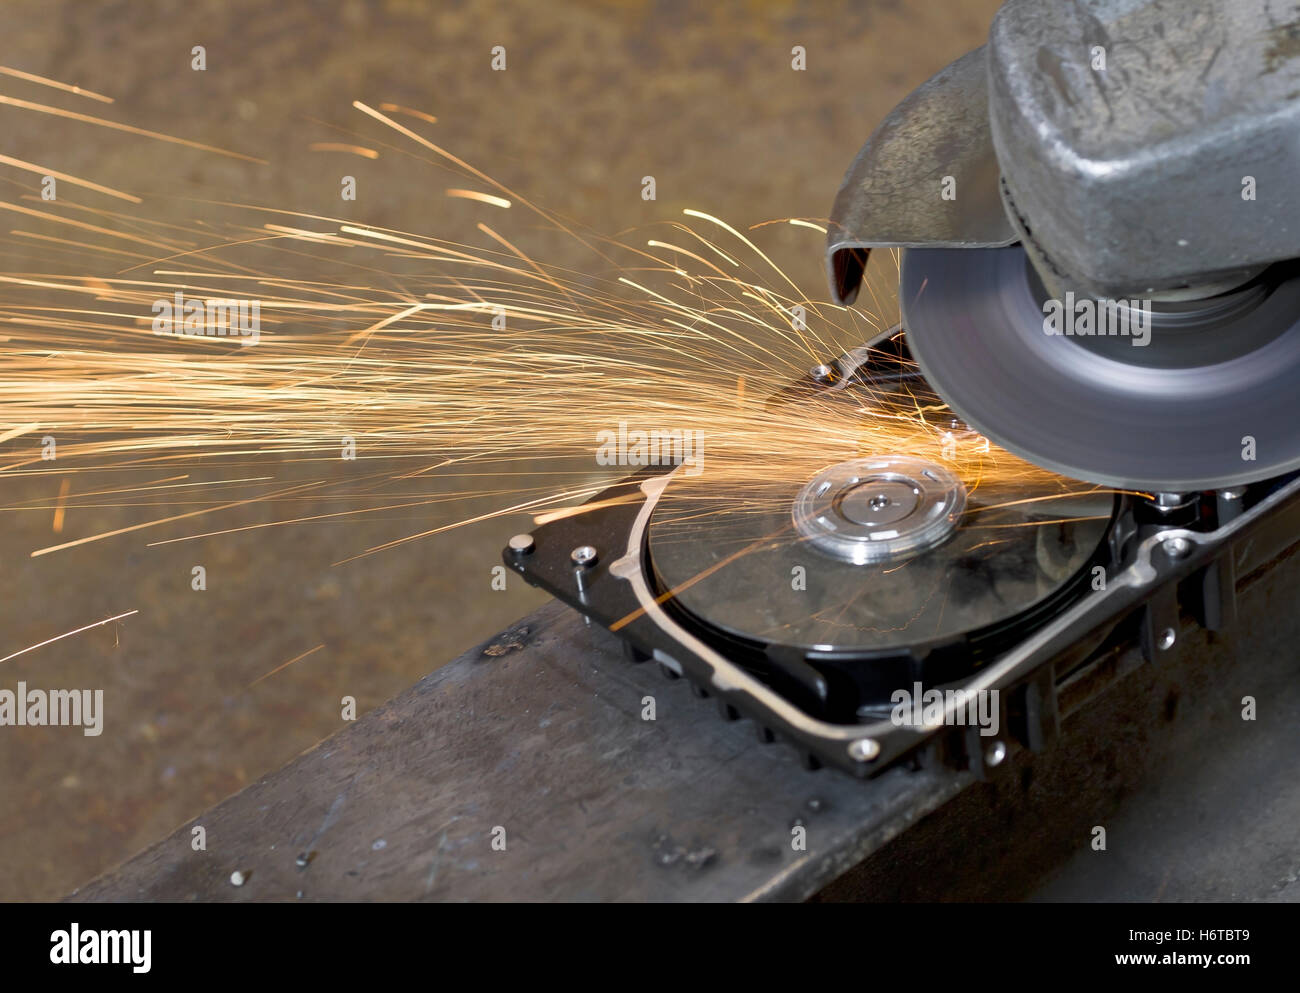 industry polisher angle grinder PC computers computer tool calculator industry science engineering beam heat rusty - Stock Image